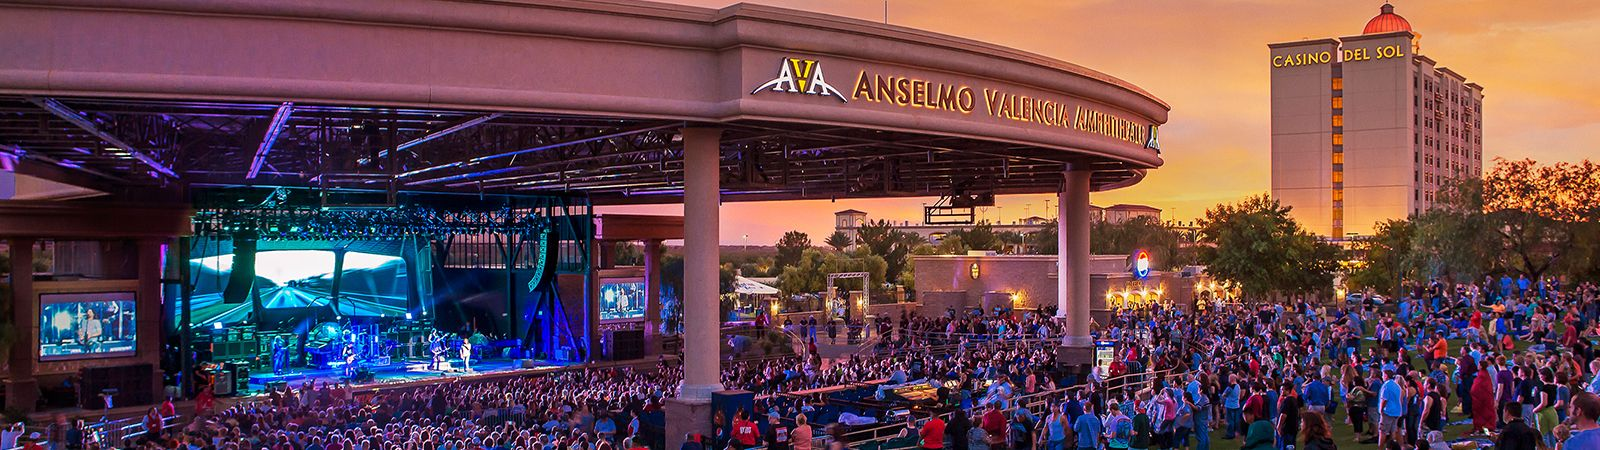 ava Amphitheater Concerts at Casino Del Sol